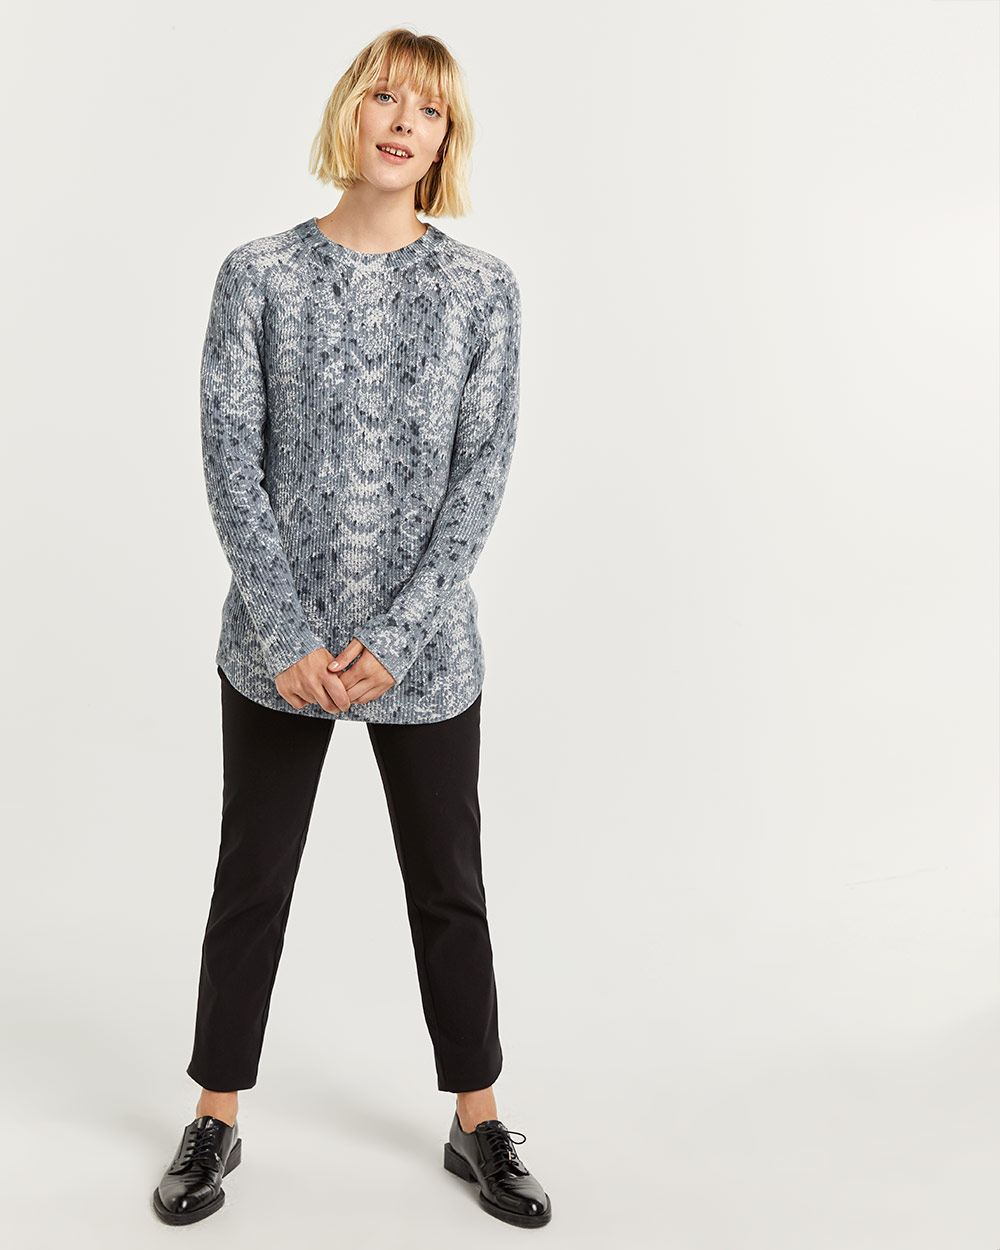 Snake Print Cotton Ribbed Sweater Tunic